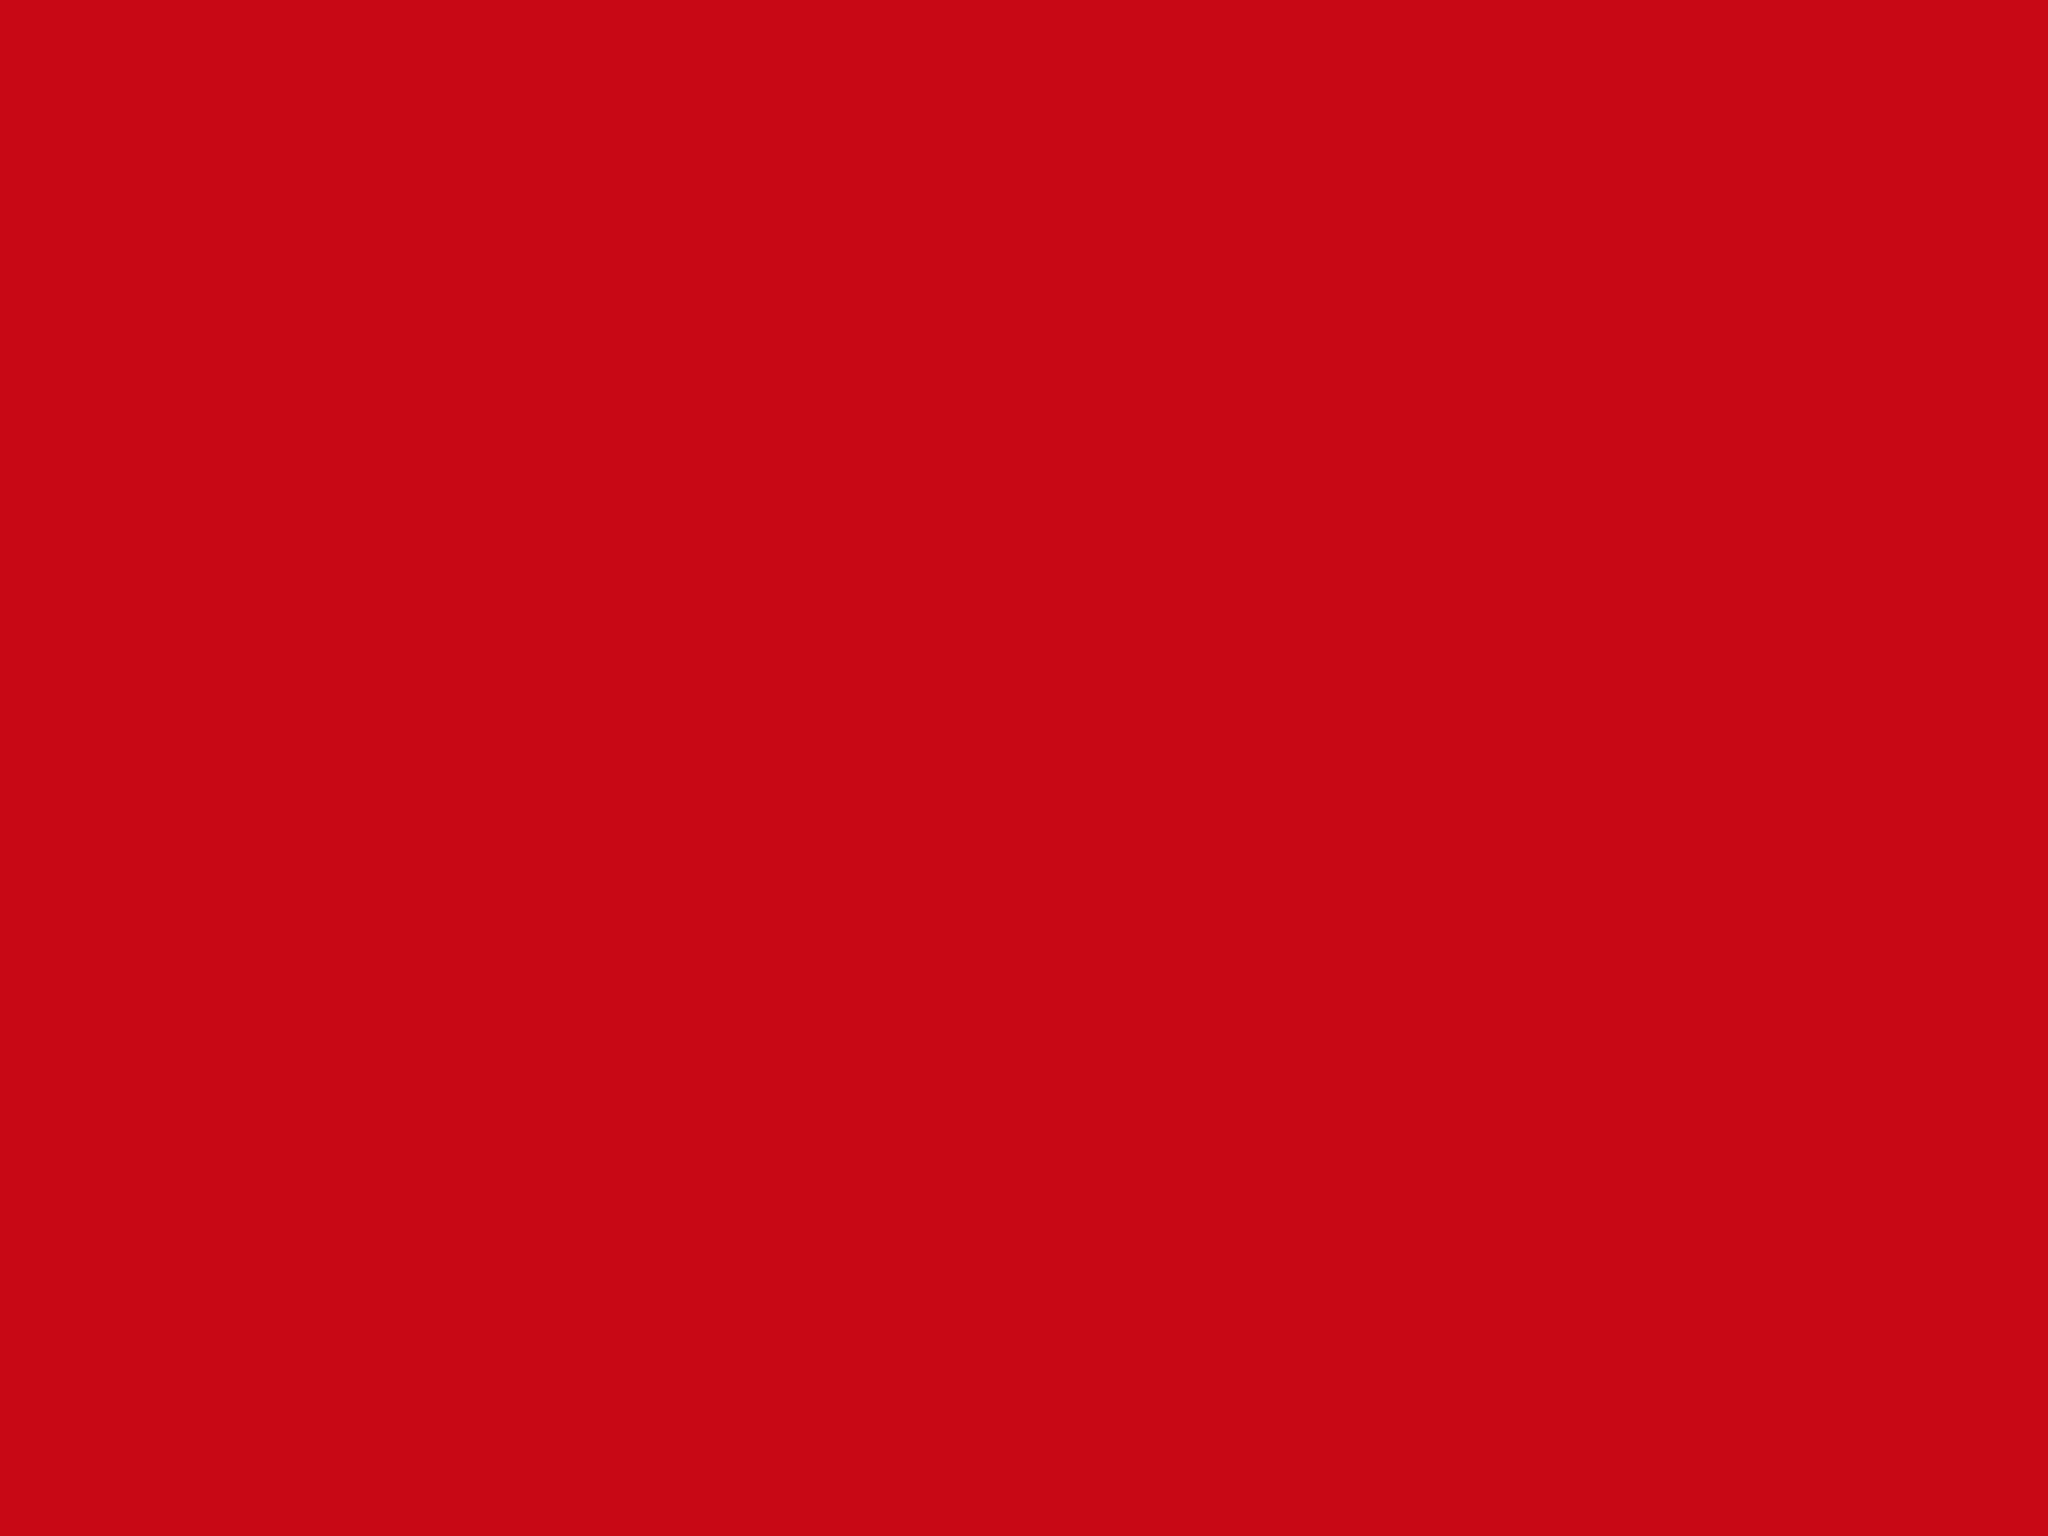 Red Solid Color Backgrounds